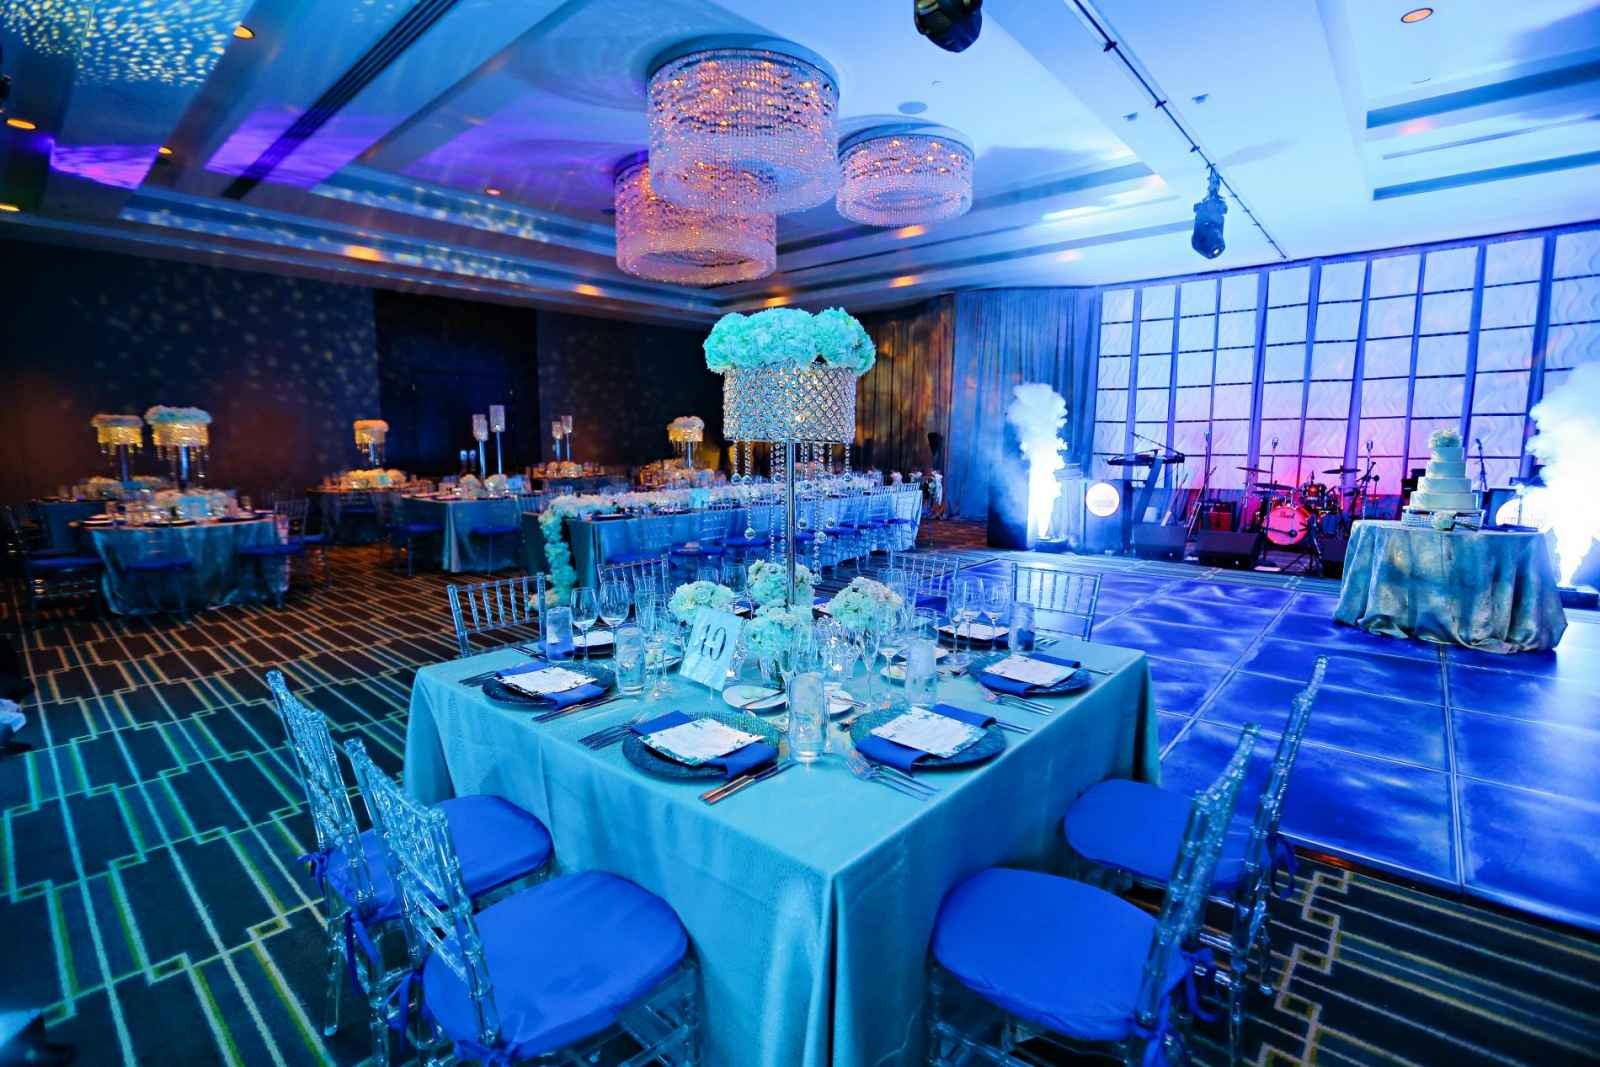 Banquet Halls Ballrooms Amp Hotels Why These Classic